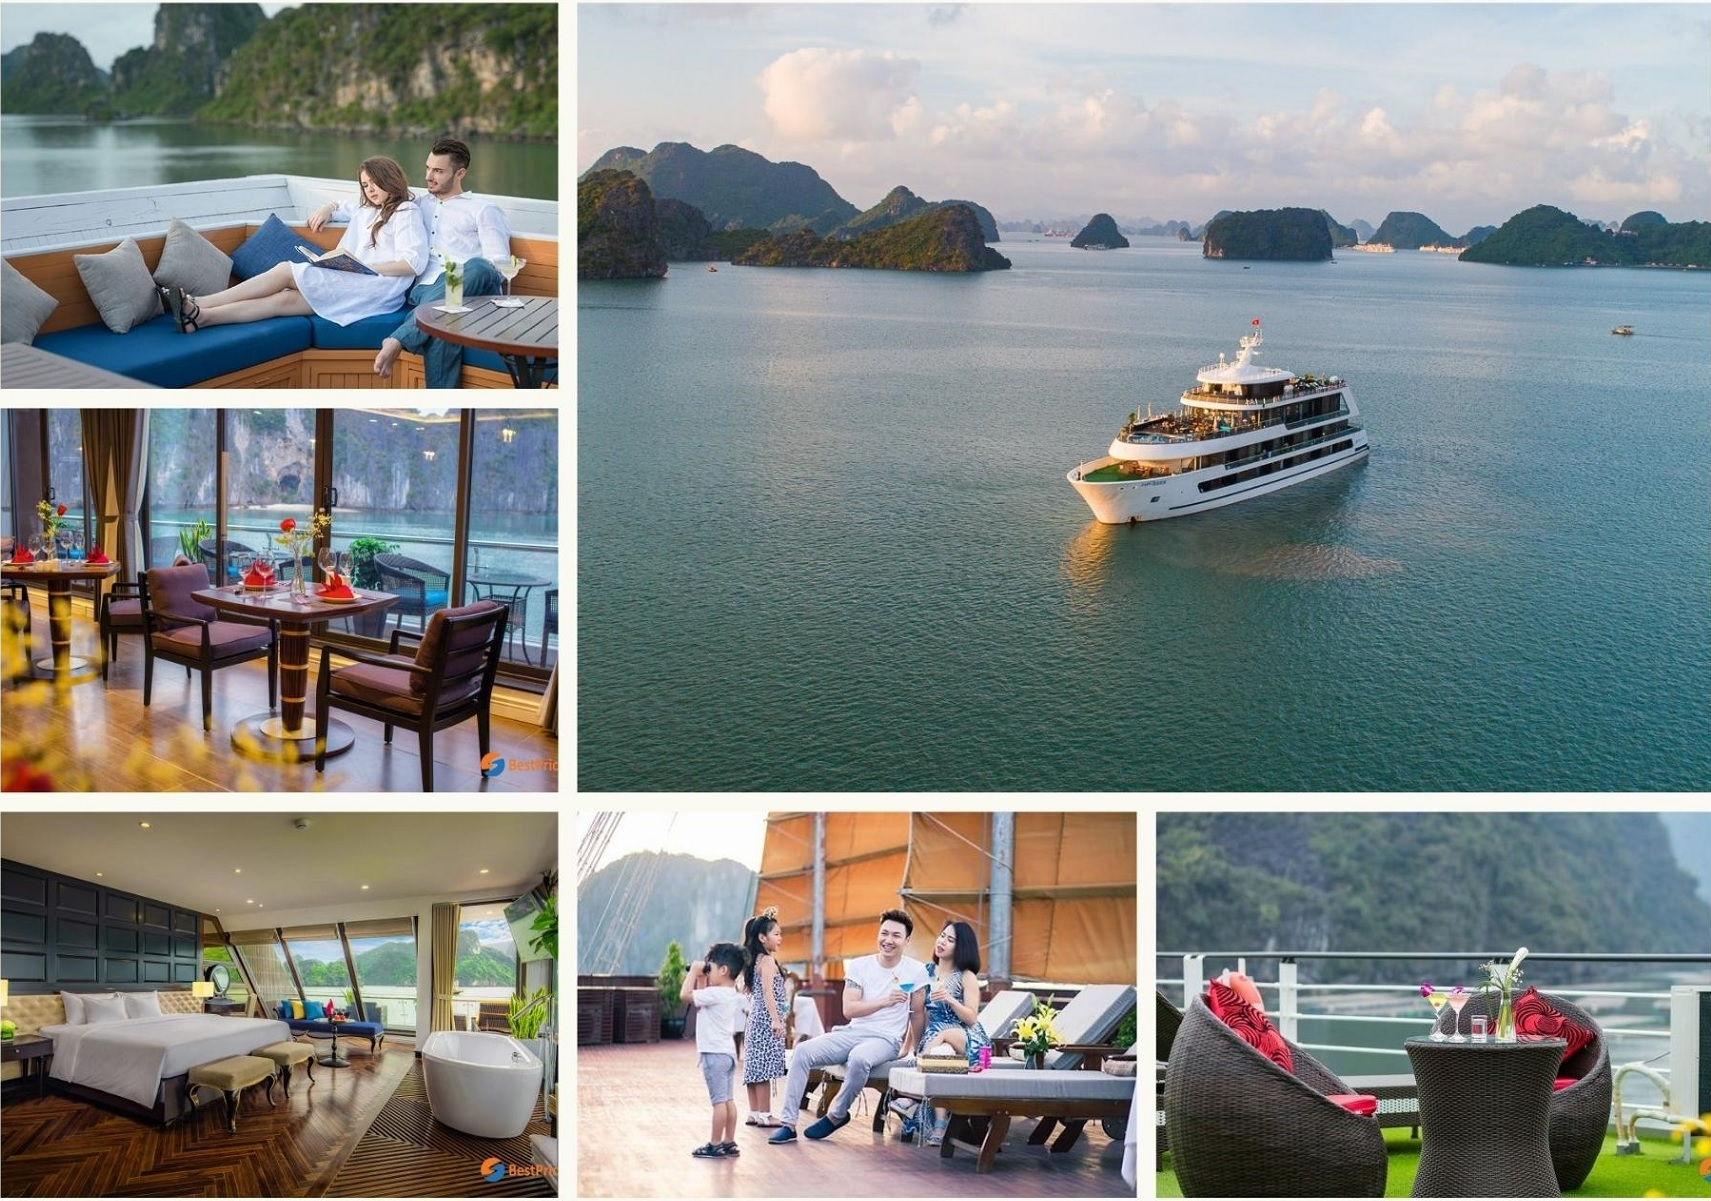 Cabin & Facility of a Luxury cruise in Halong Bay